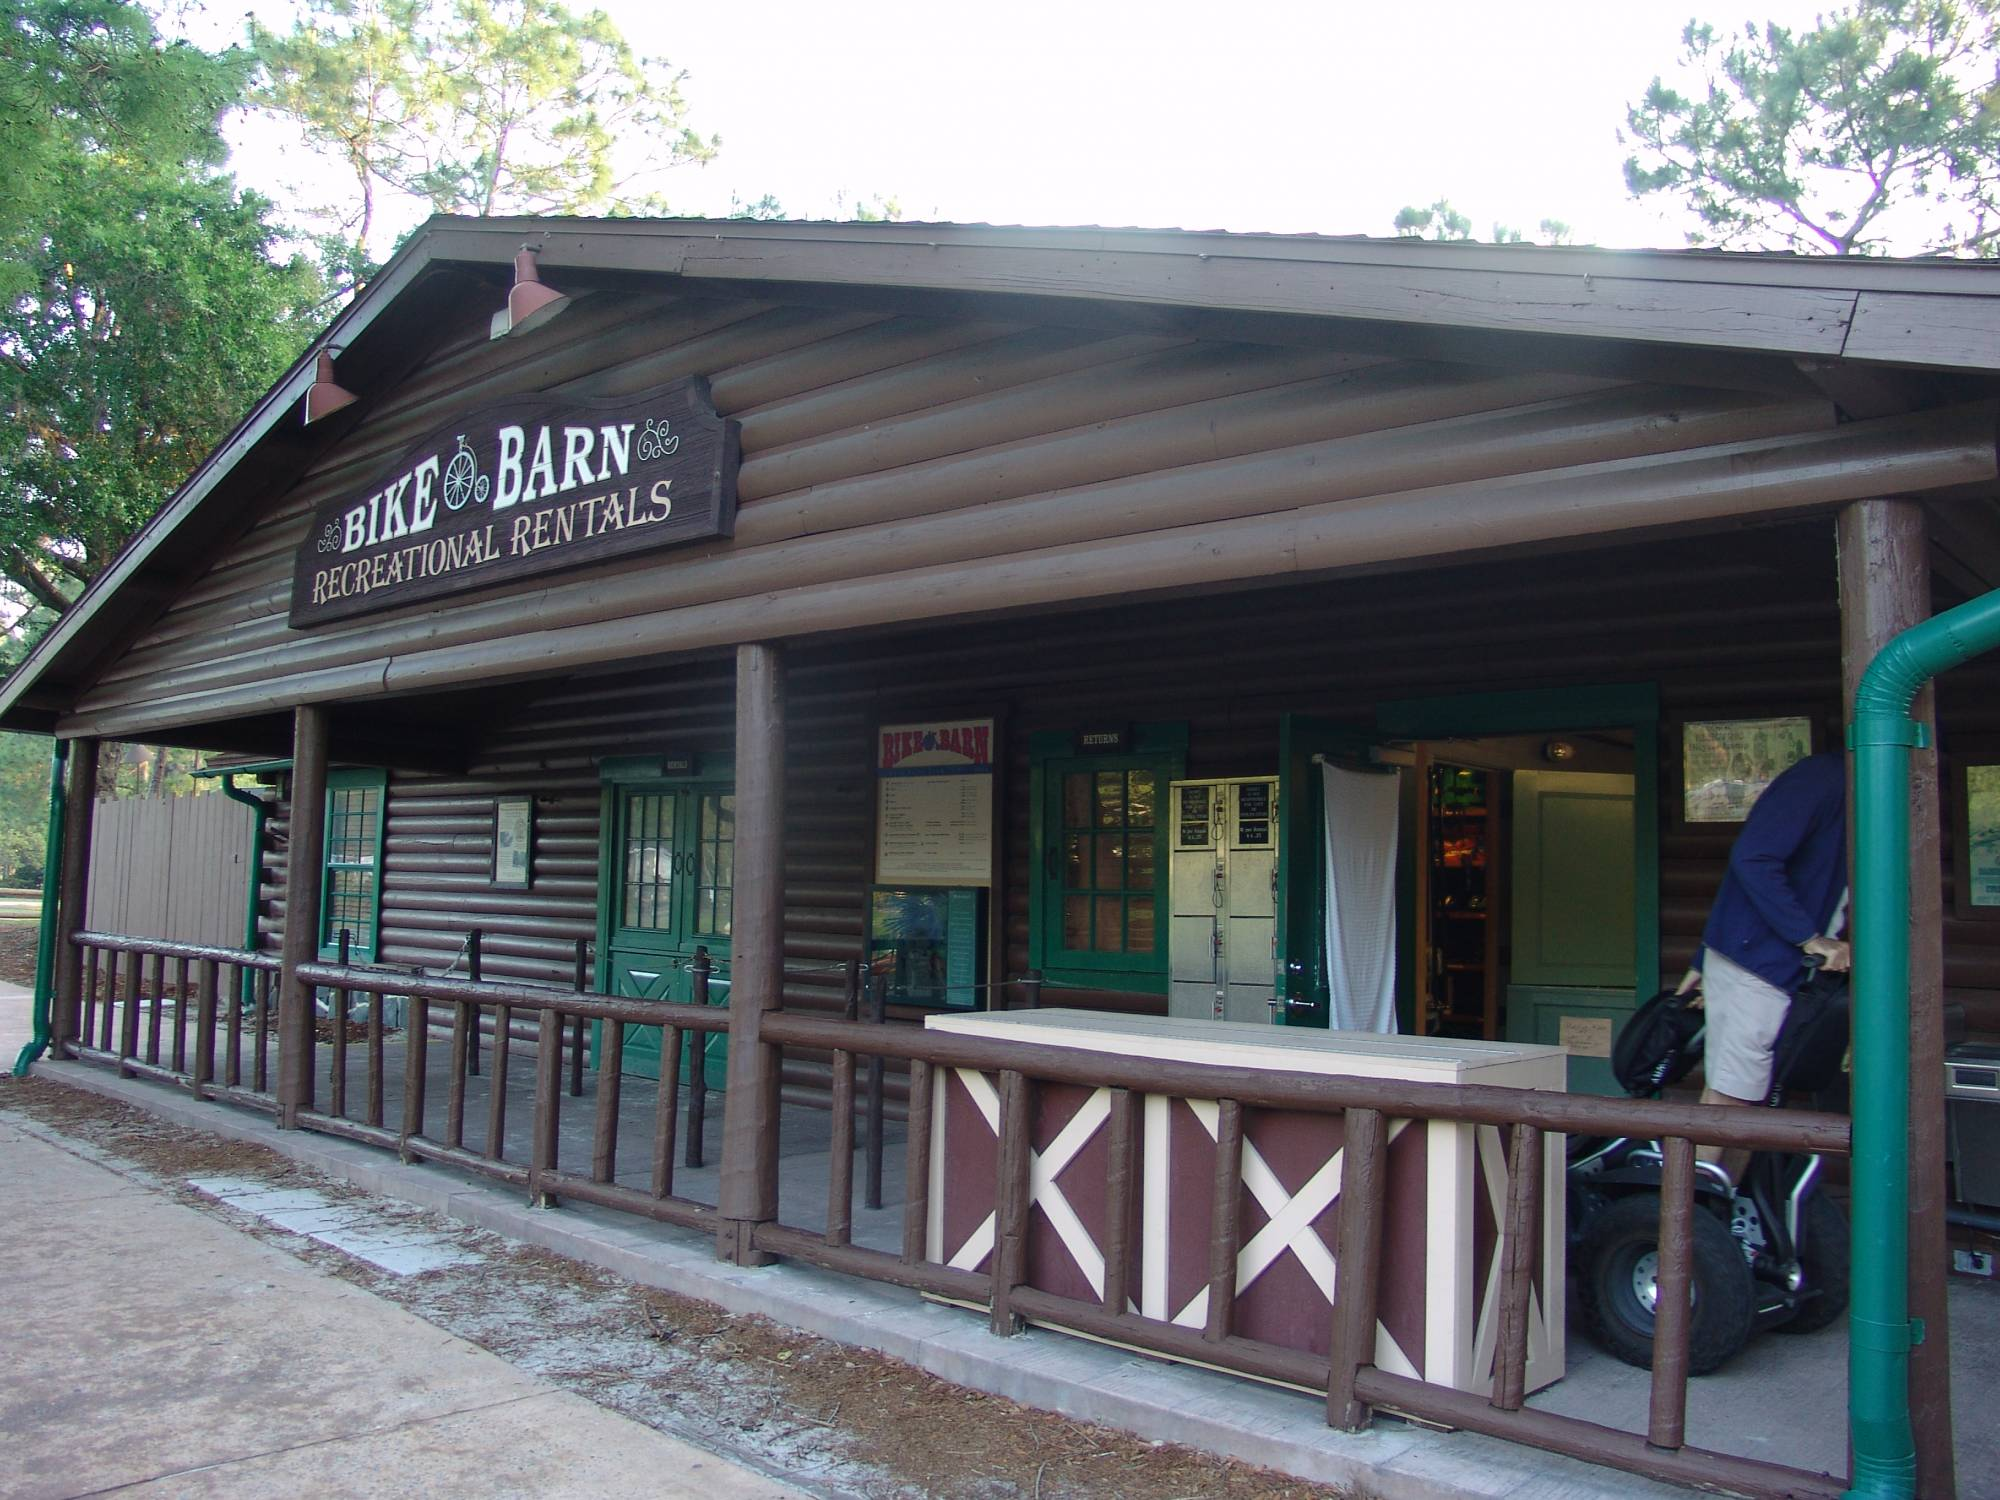 Fort Wilderness - Bike Barn